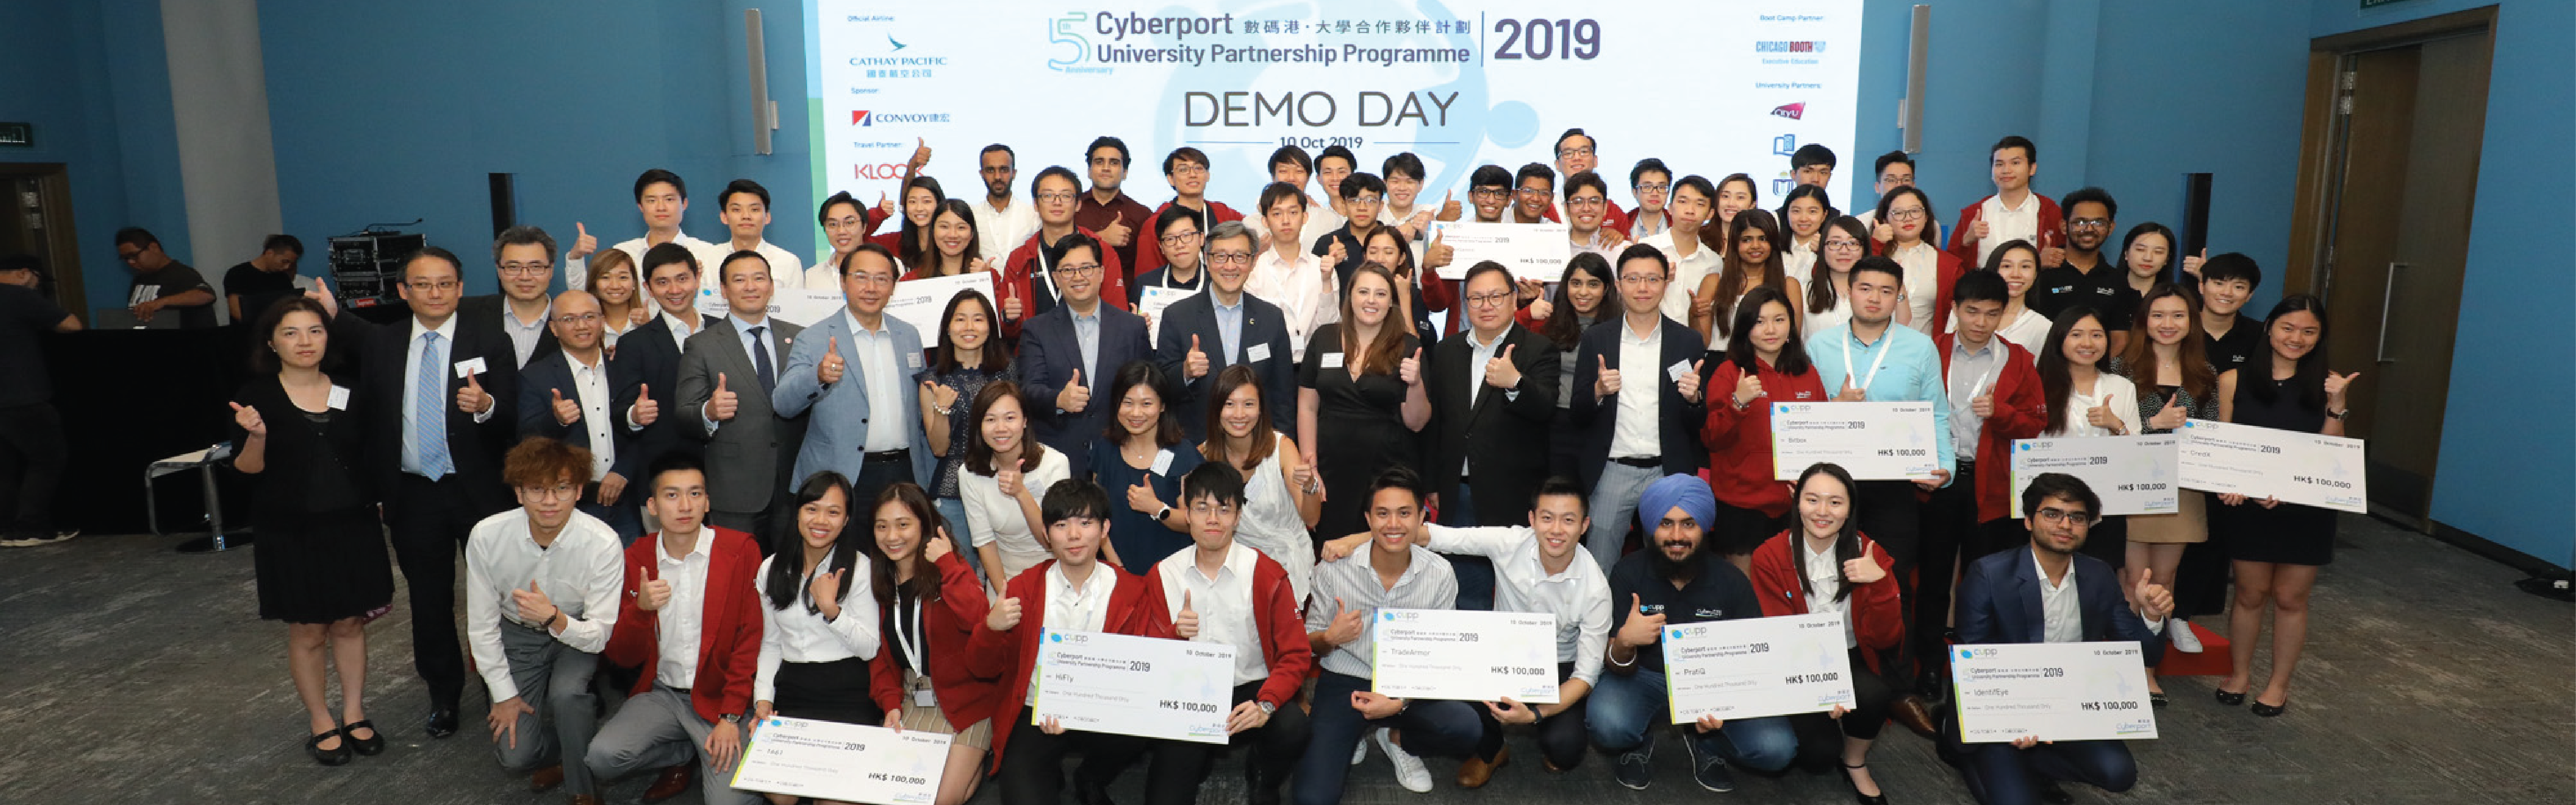 Cyberport University Partnership Programme (CUPP) 2019